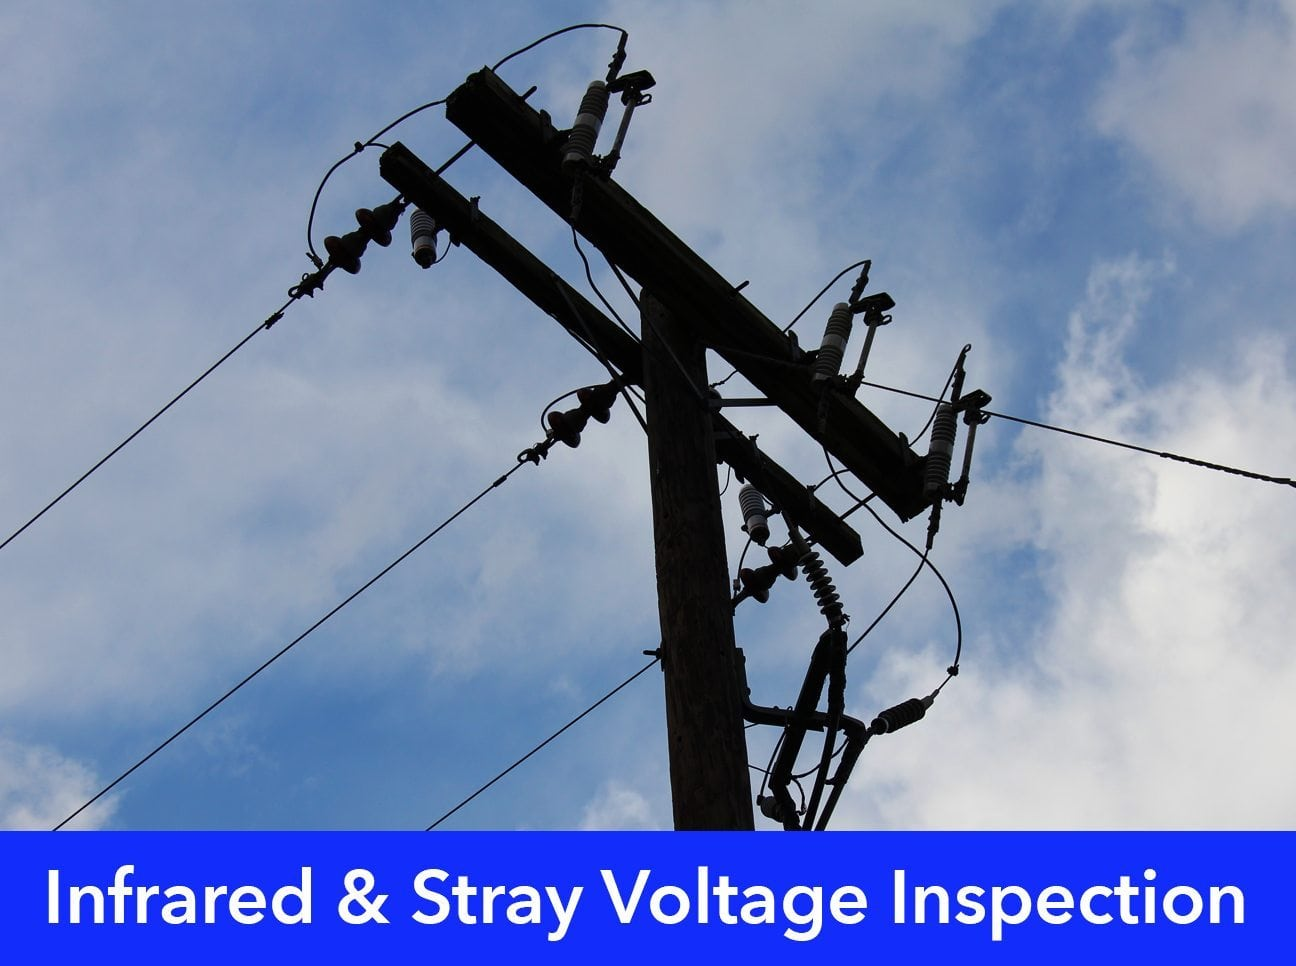 Infrared and stray voltage inspection   P&CG - Power & Construction ...